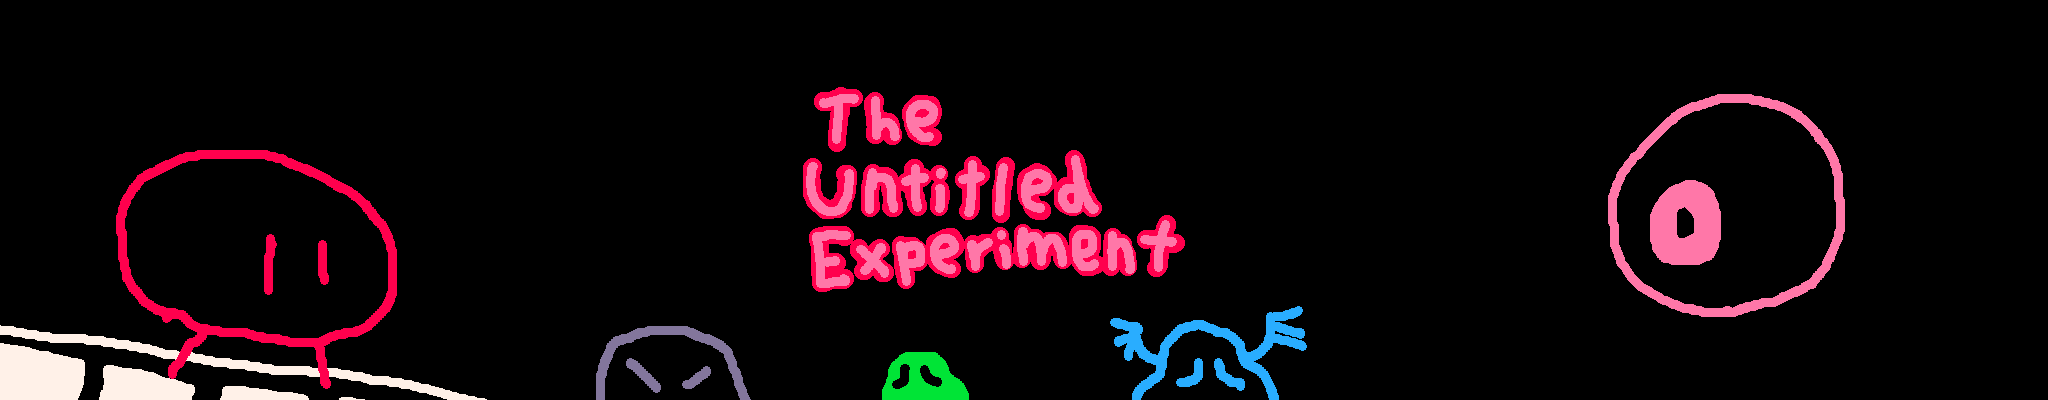 The Untitled Experiment